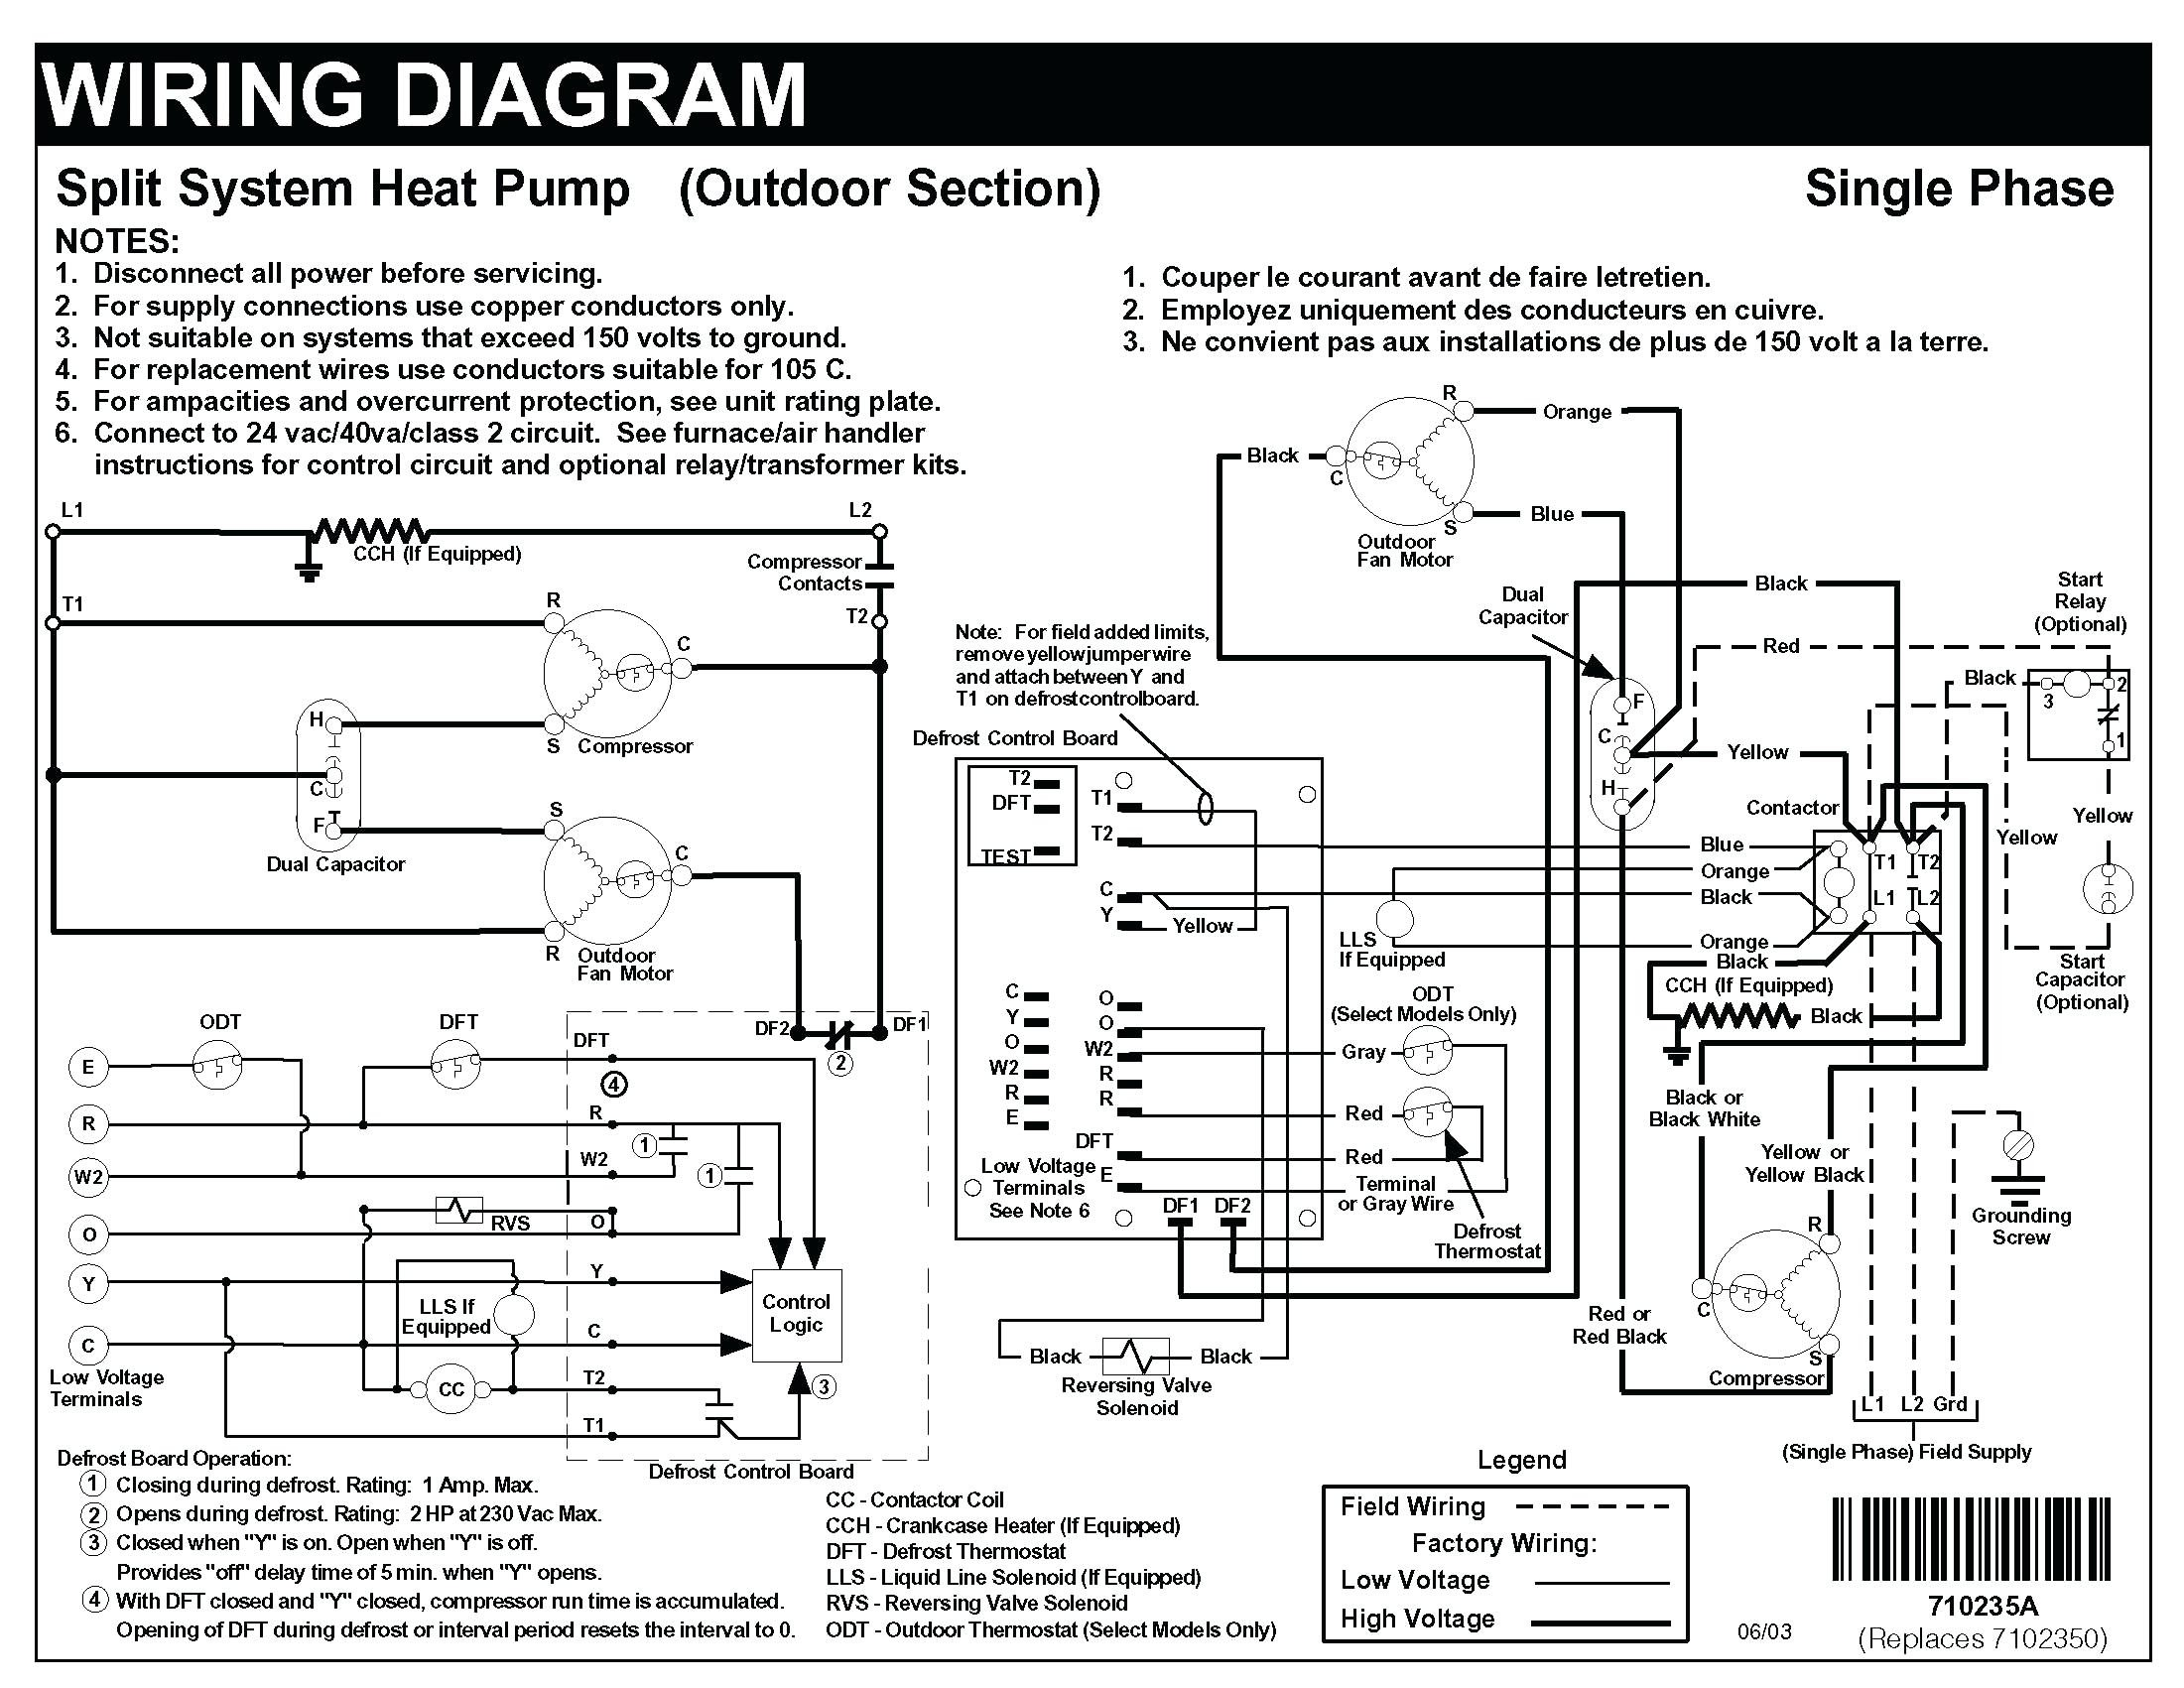 Heat Pump Wiring Diagrams Wiring Diagram Honeywell Heat Pump thermostat Unique for with W Nest Of Heat Pump Wiring Diagrams